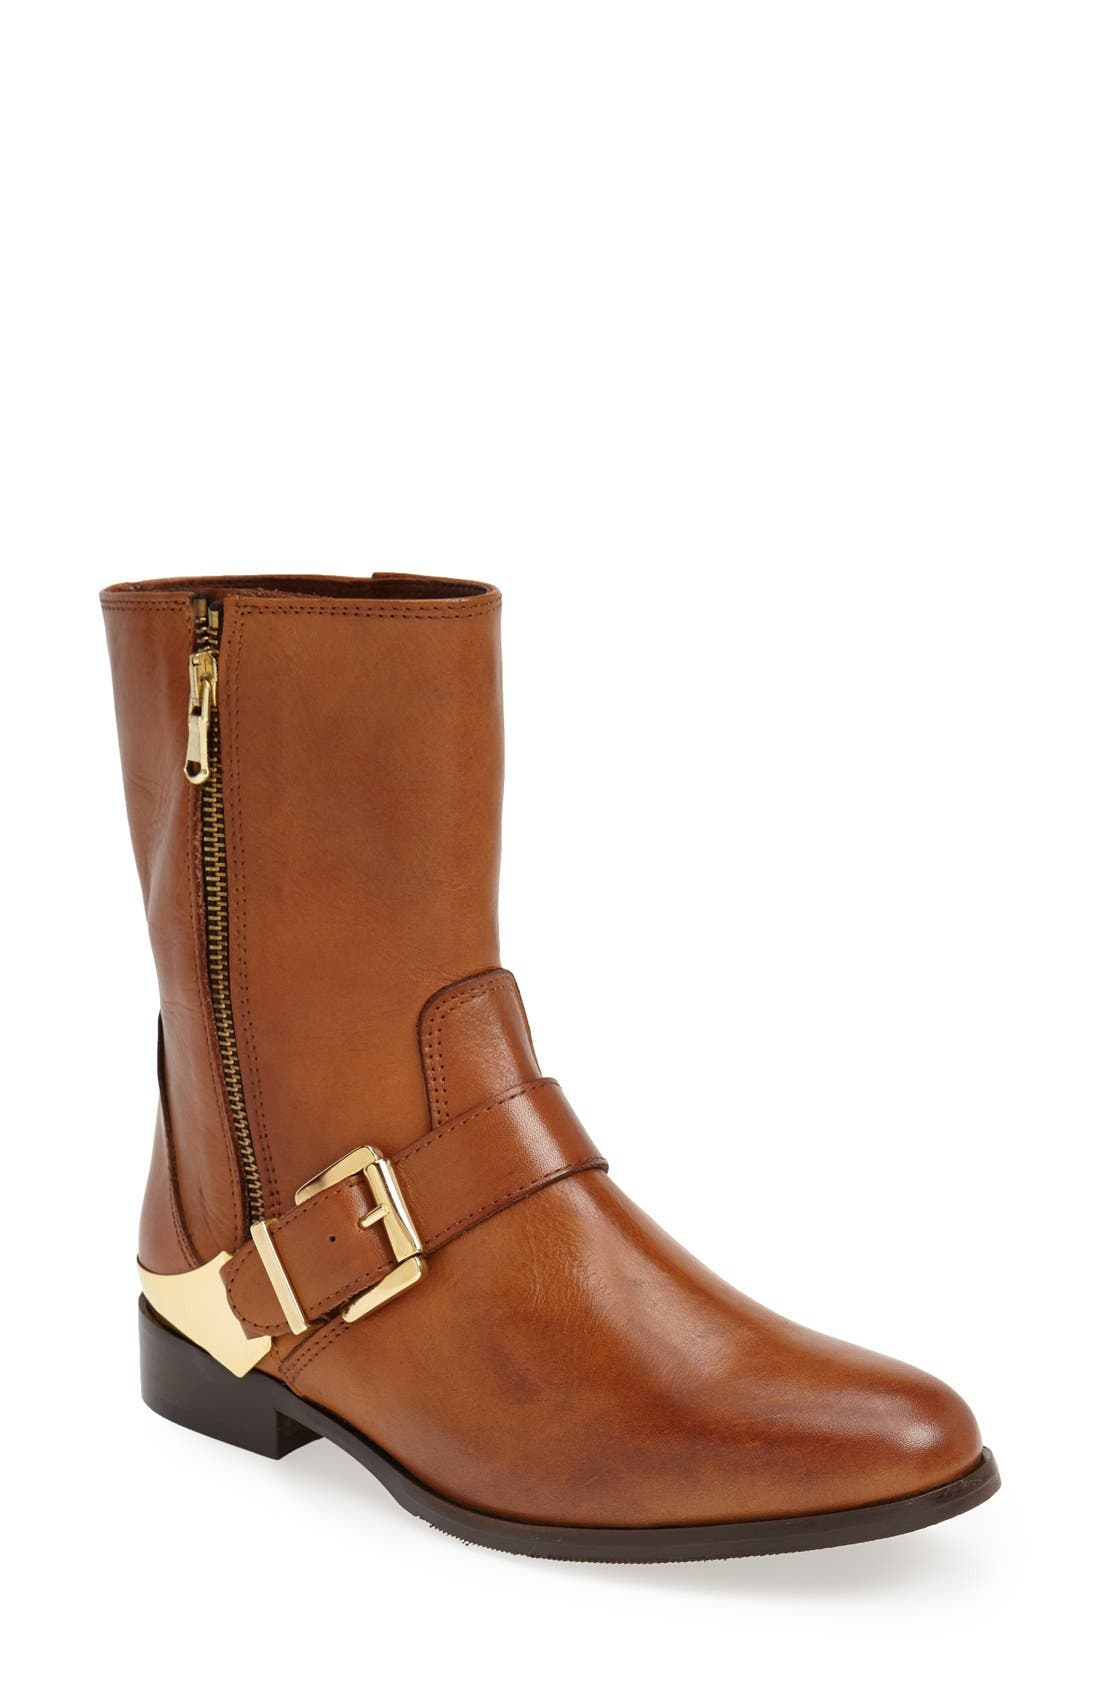 Main Image - Charles David 'Remian' Burnished Leather Boot (Women)